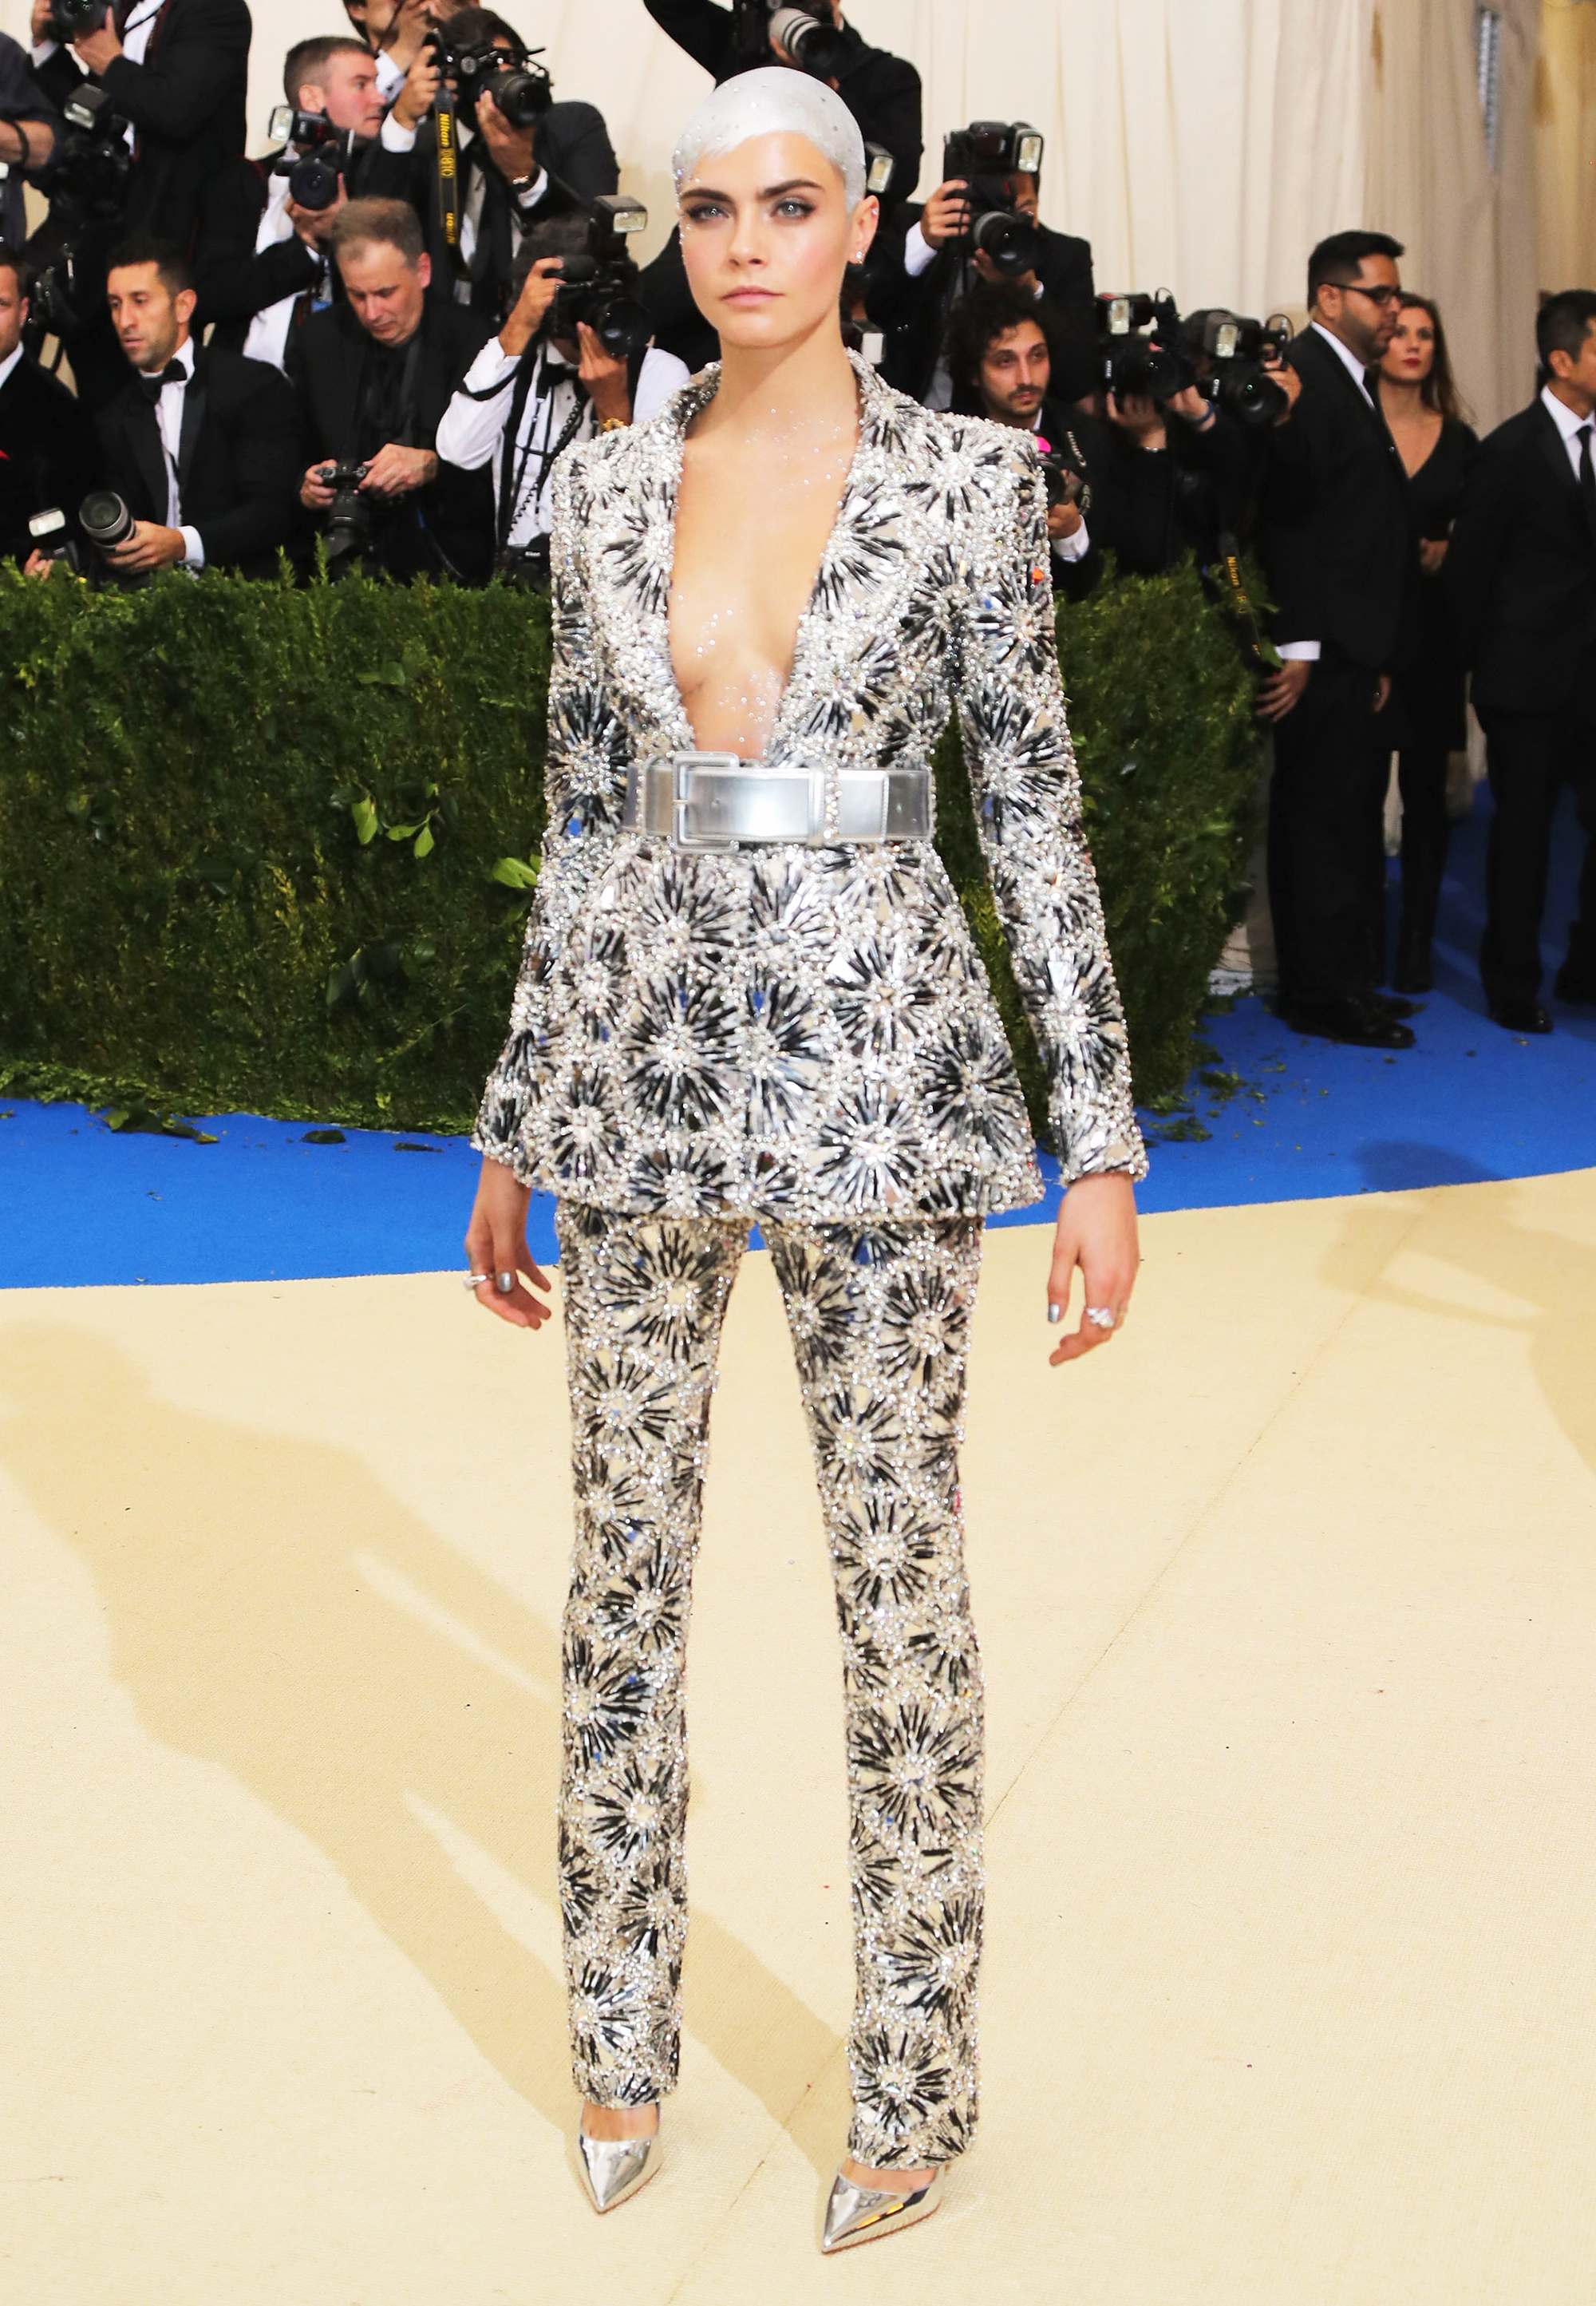 Cara Delevingne attends The Metropolitan Museum of Art's Costume Institute benefit gala celebrating the opening of the Rei Kawakubo/Comme des Garçons: Art of the In-Between exhibition in New York City, on May 1, 2017.